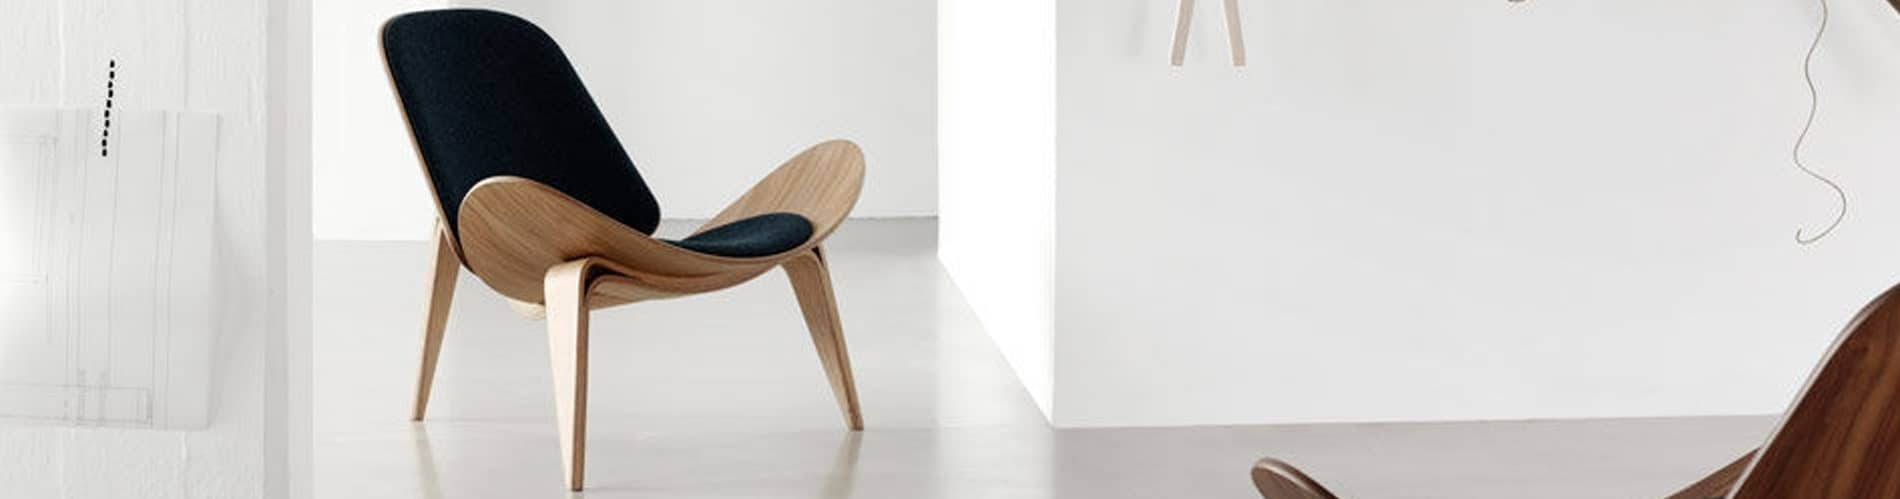 Hans Wegner shell chair (CH07) inside a room | byBespoek